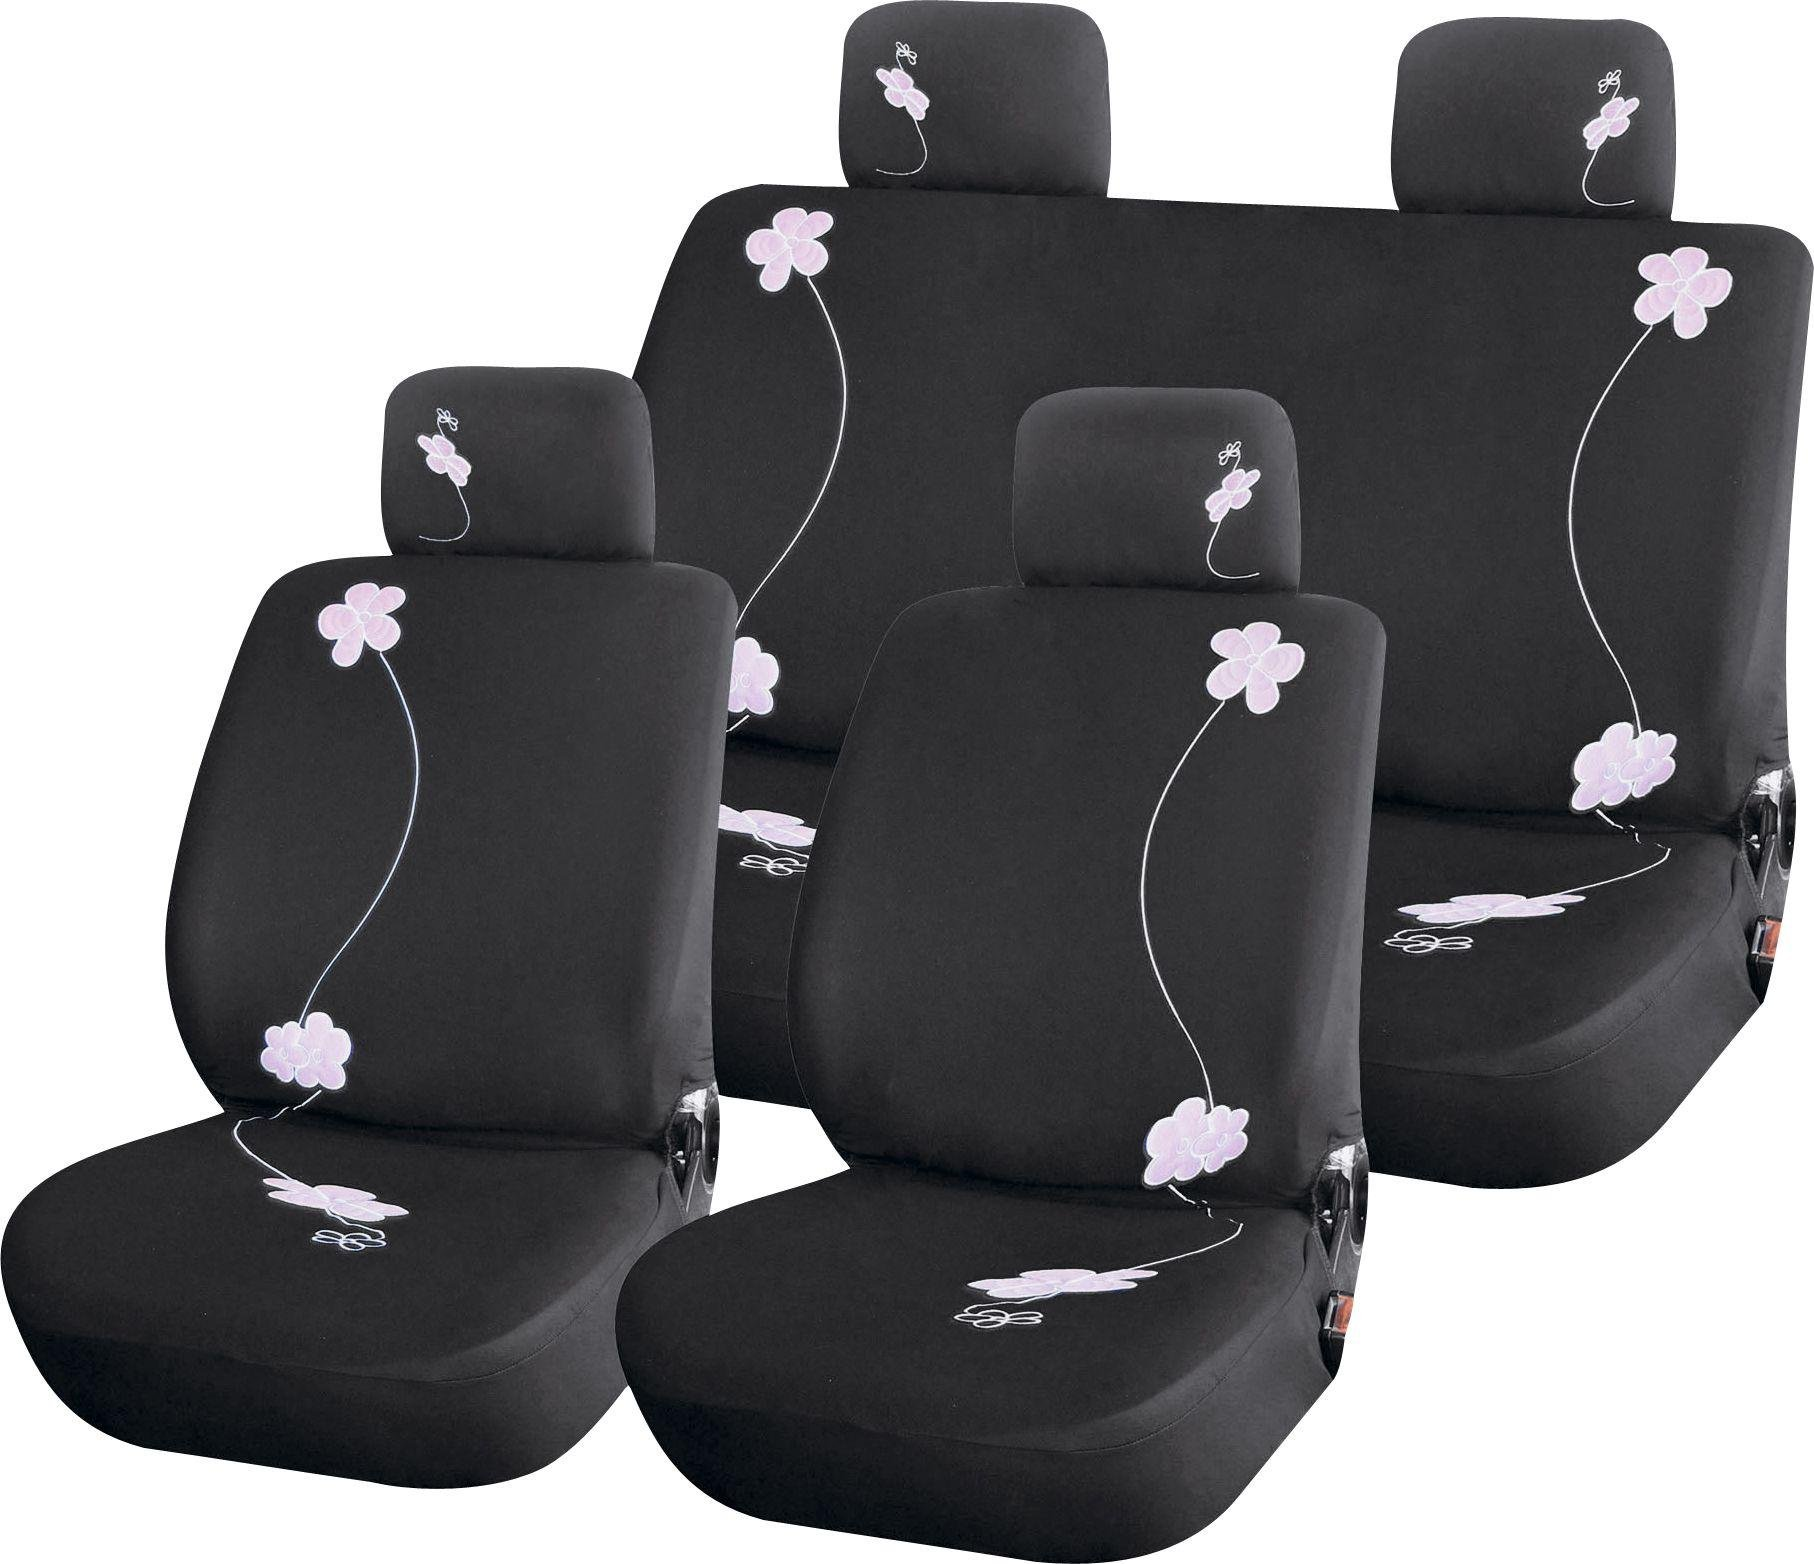 Streetwize Car Seat Covers   Pink Flowers